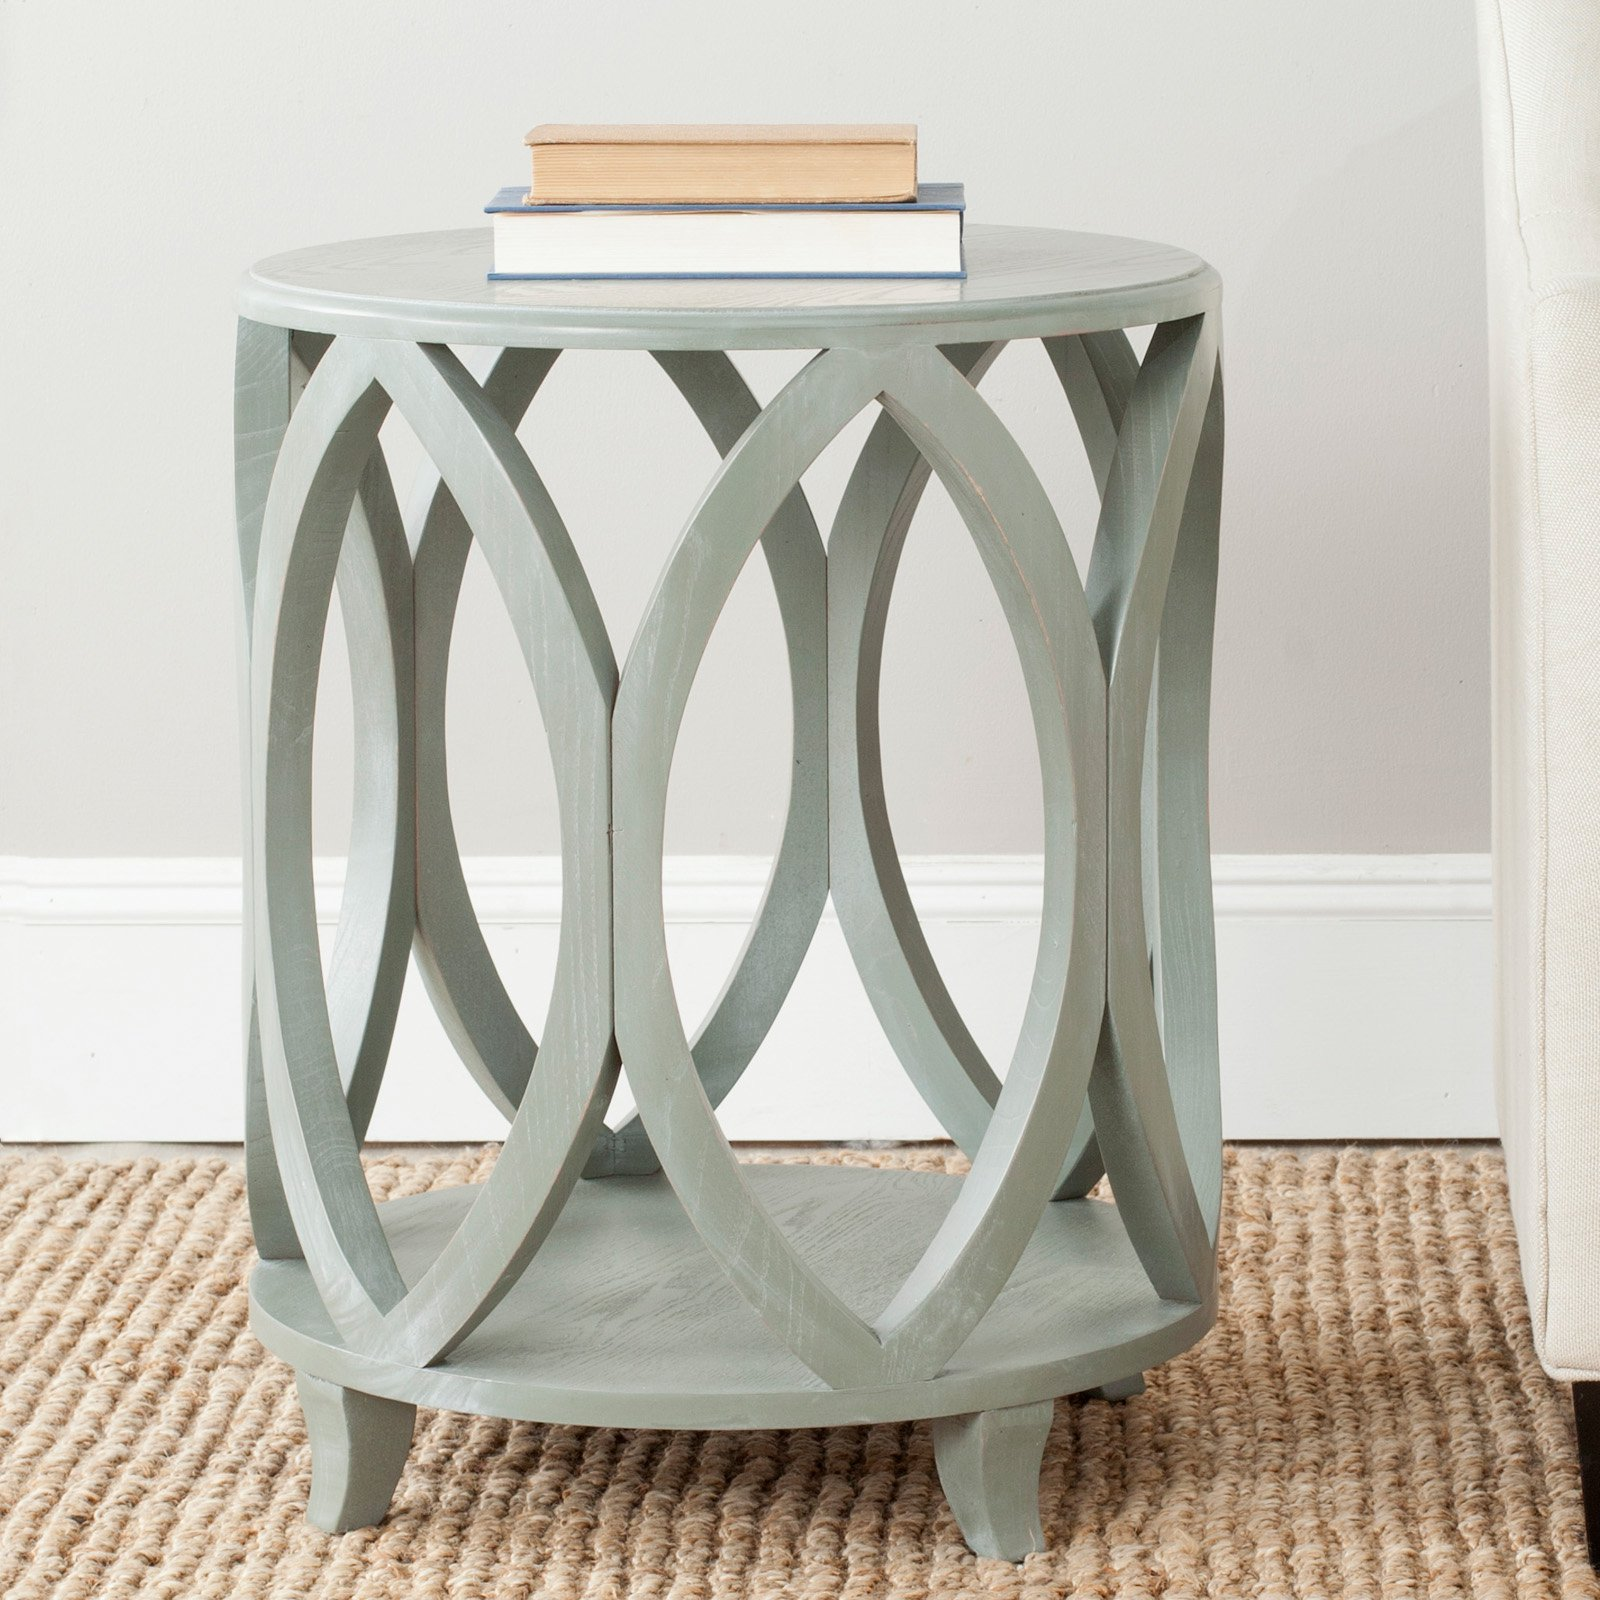 safavieh janika accent table off white very mirrored bedside sofa legs oval side espresso nesting tables pier one dining bench blue chair teak sidetable faux marble corner display